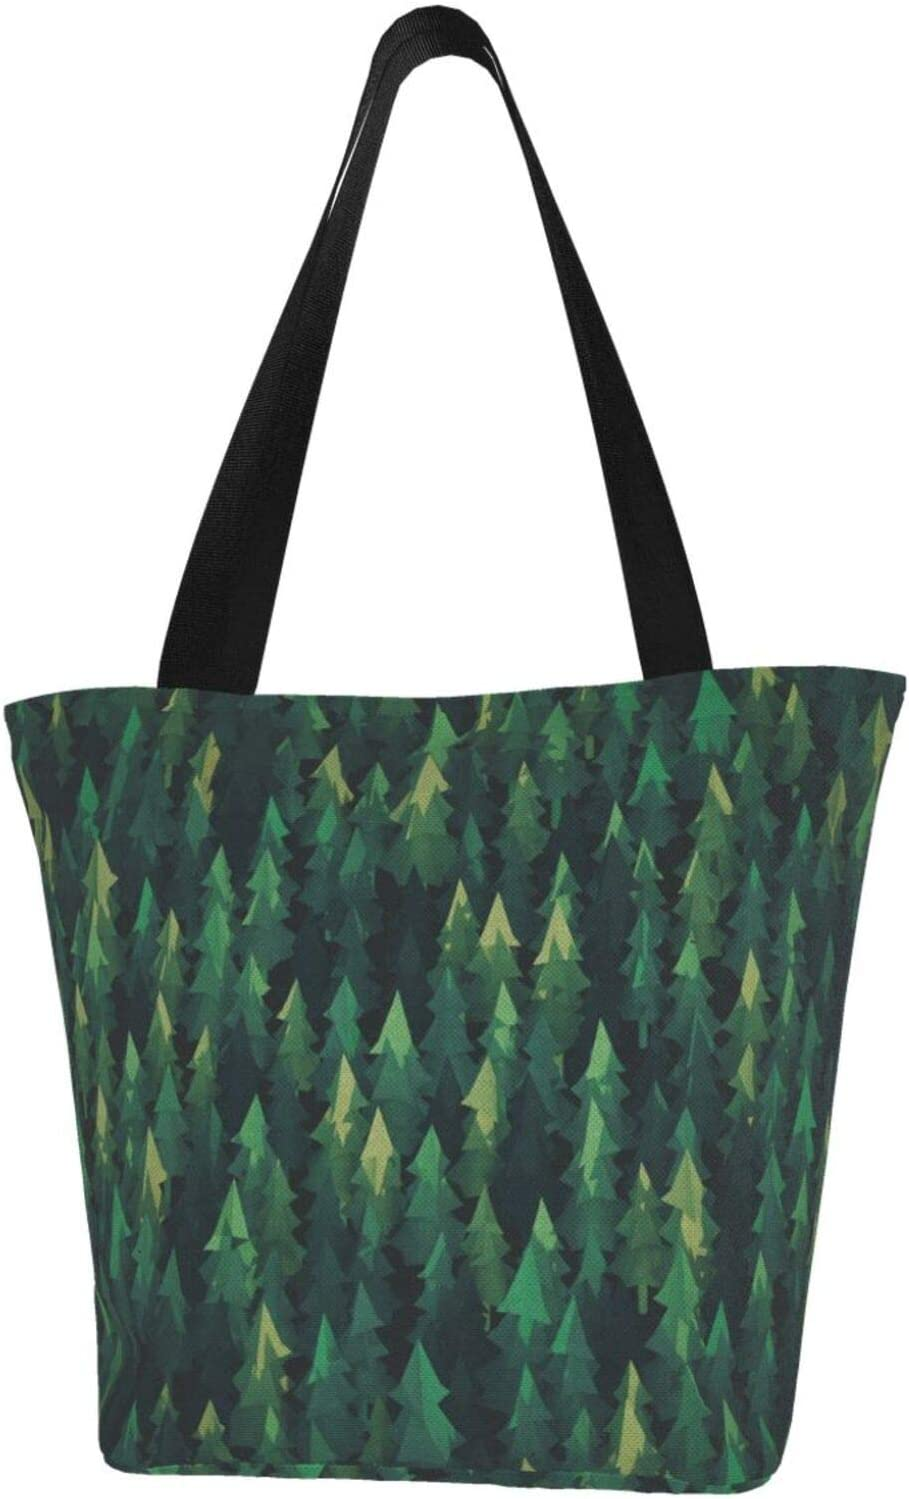 AKLID Green Forest Extra Large Water Tote Regular dealer Bag f Popular brand in the world Resistant Canvas